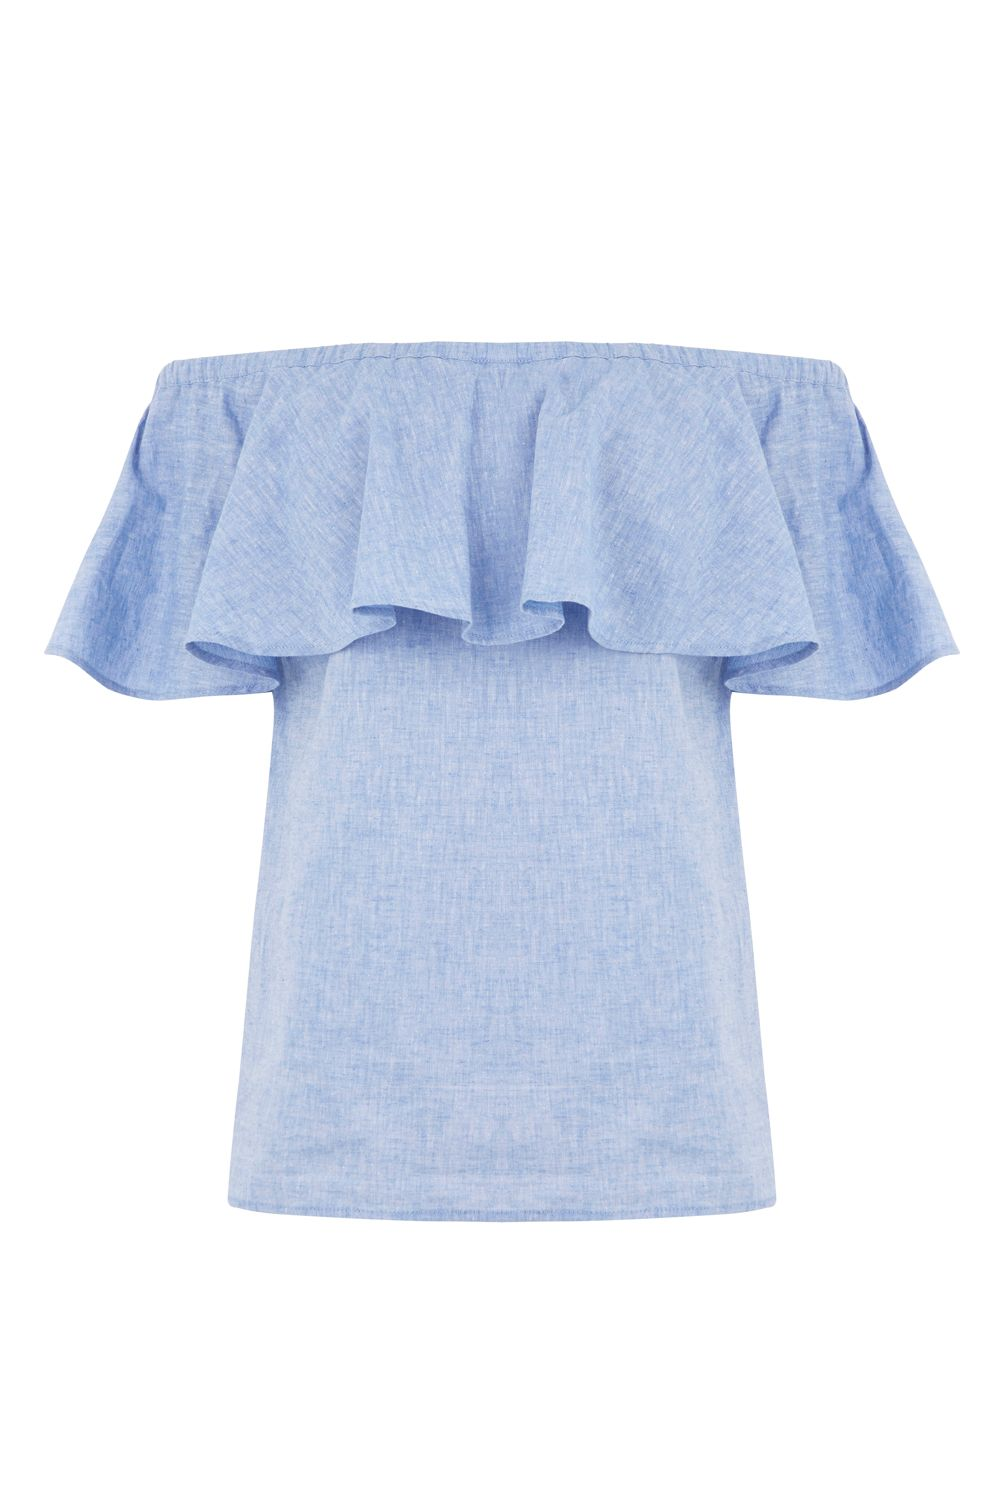 Warehouse Chambray Bardot Ruffle Top, Light Blue